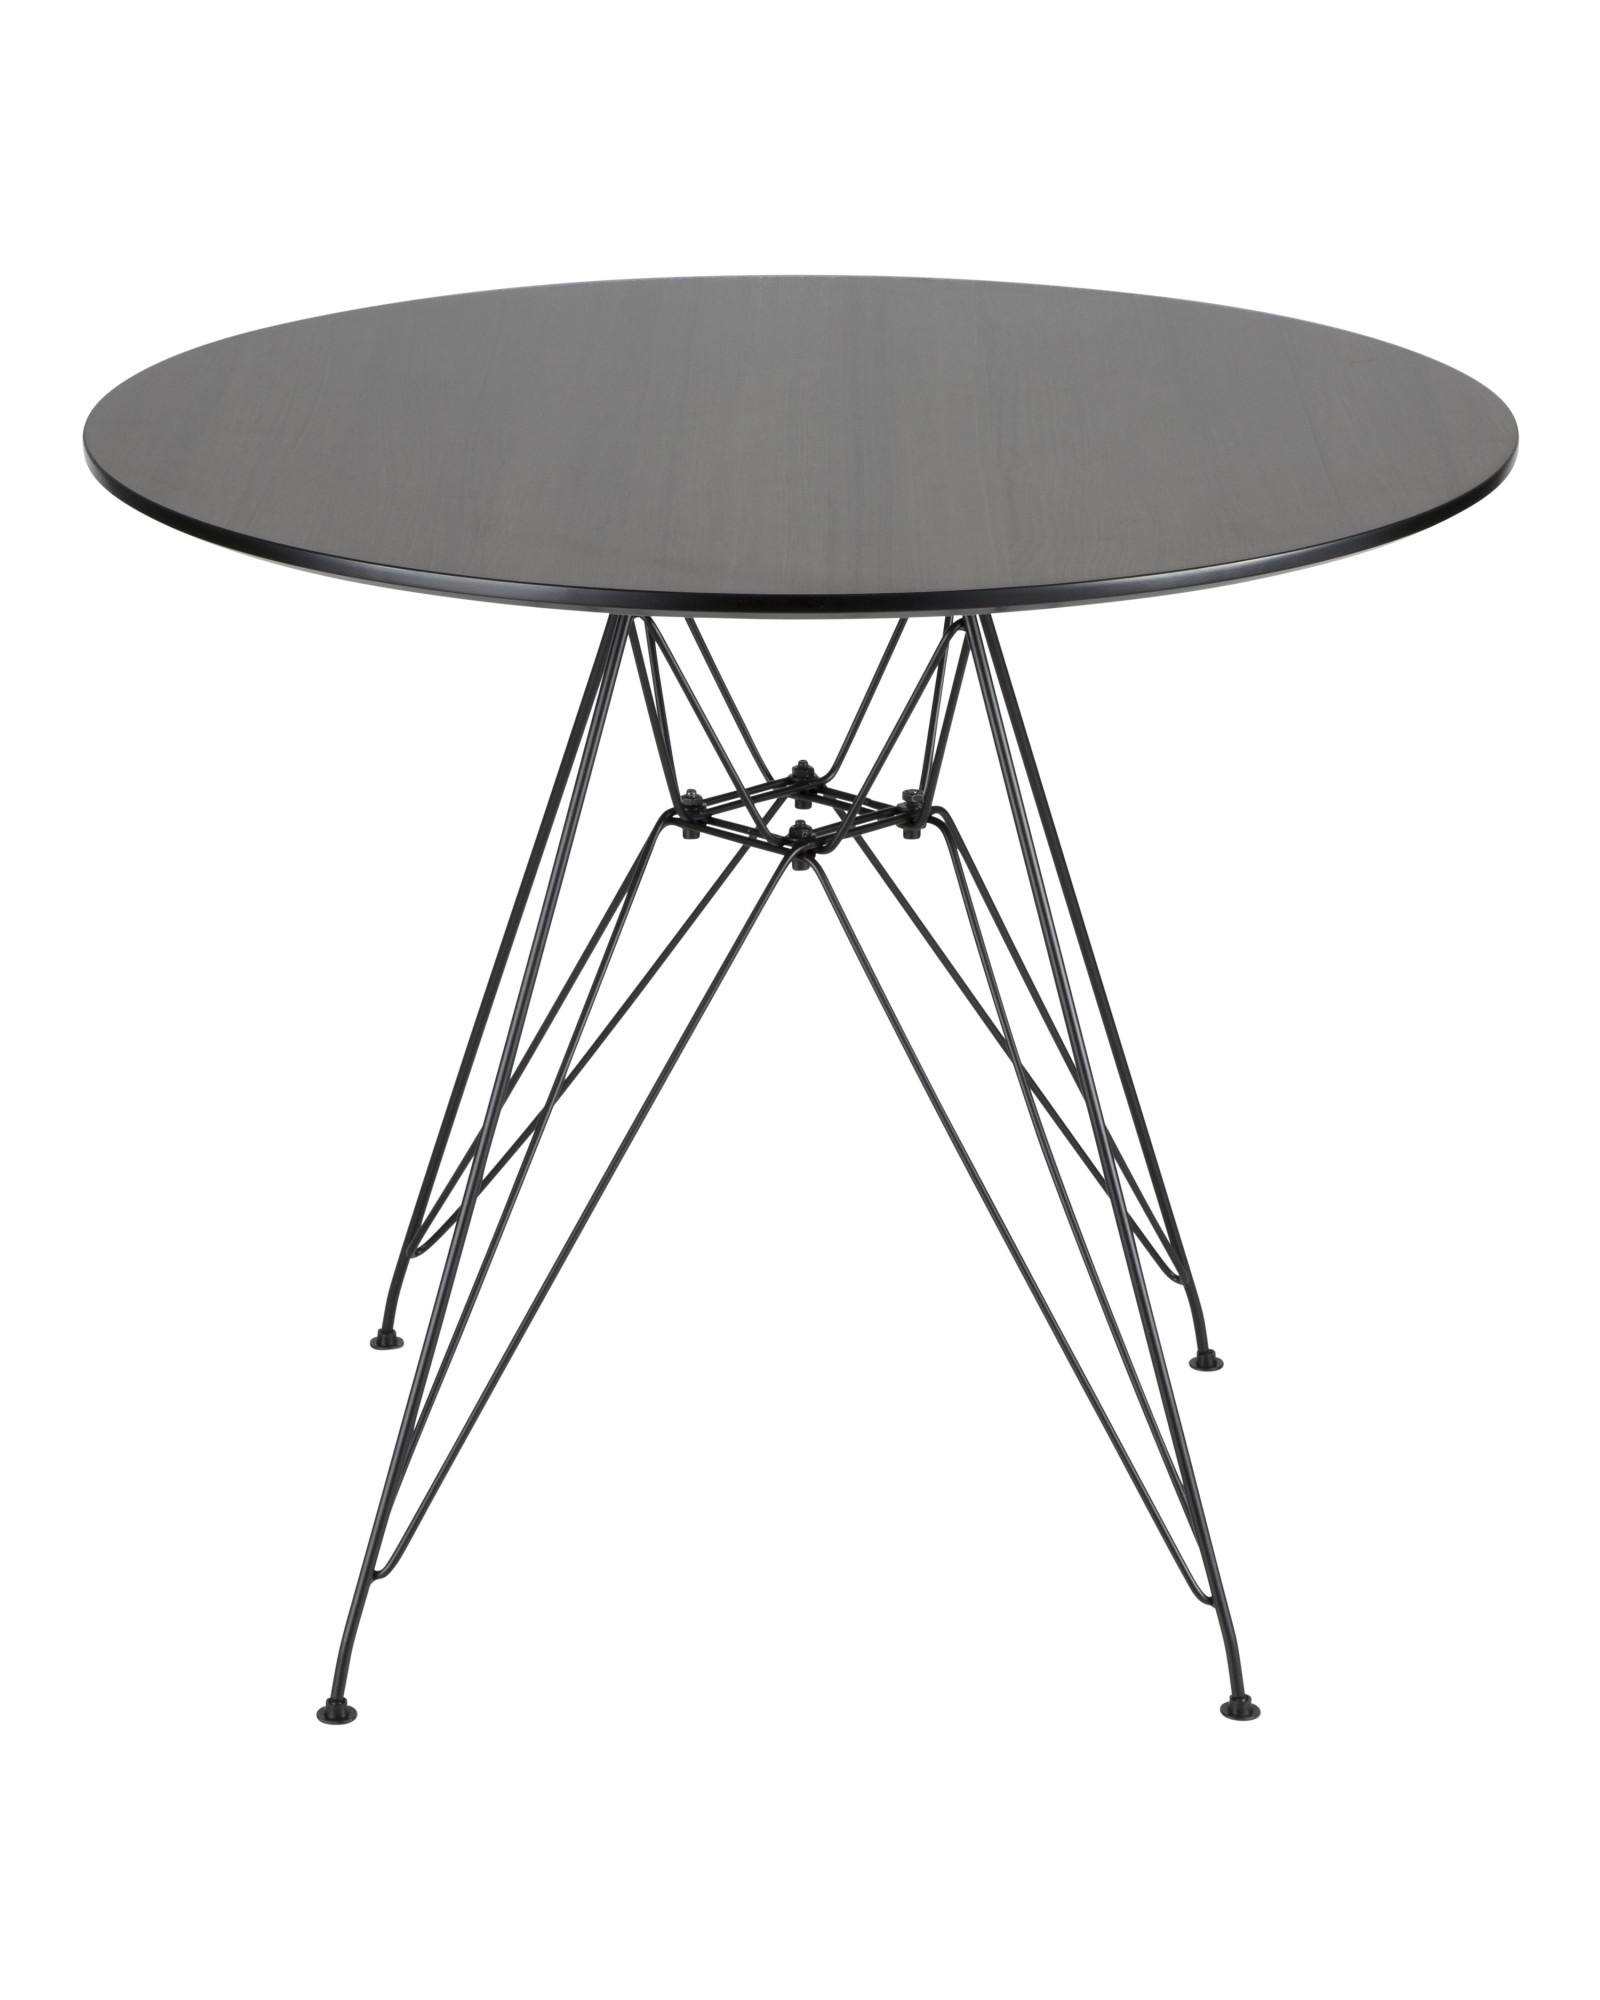 Avery Round Dining Table – Avery Mid Century Modern Round Regarding 2018 Avery Round Dining Tables (View 6 of 25)